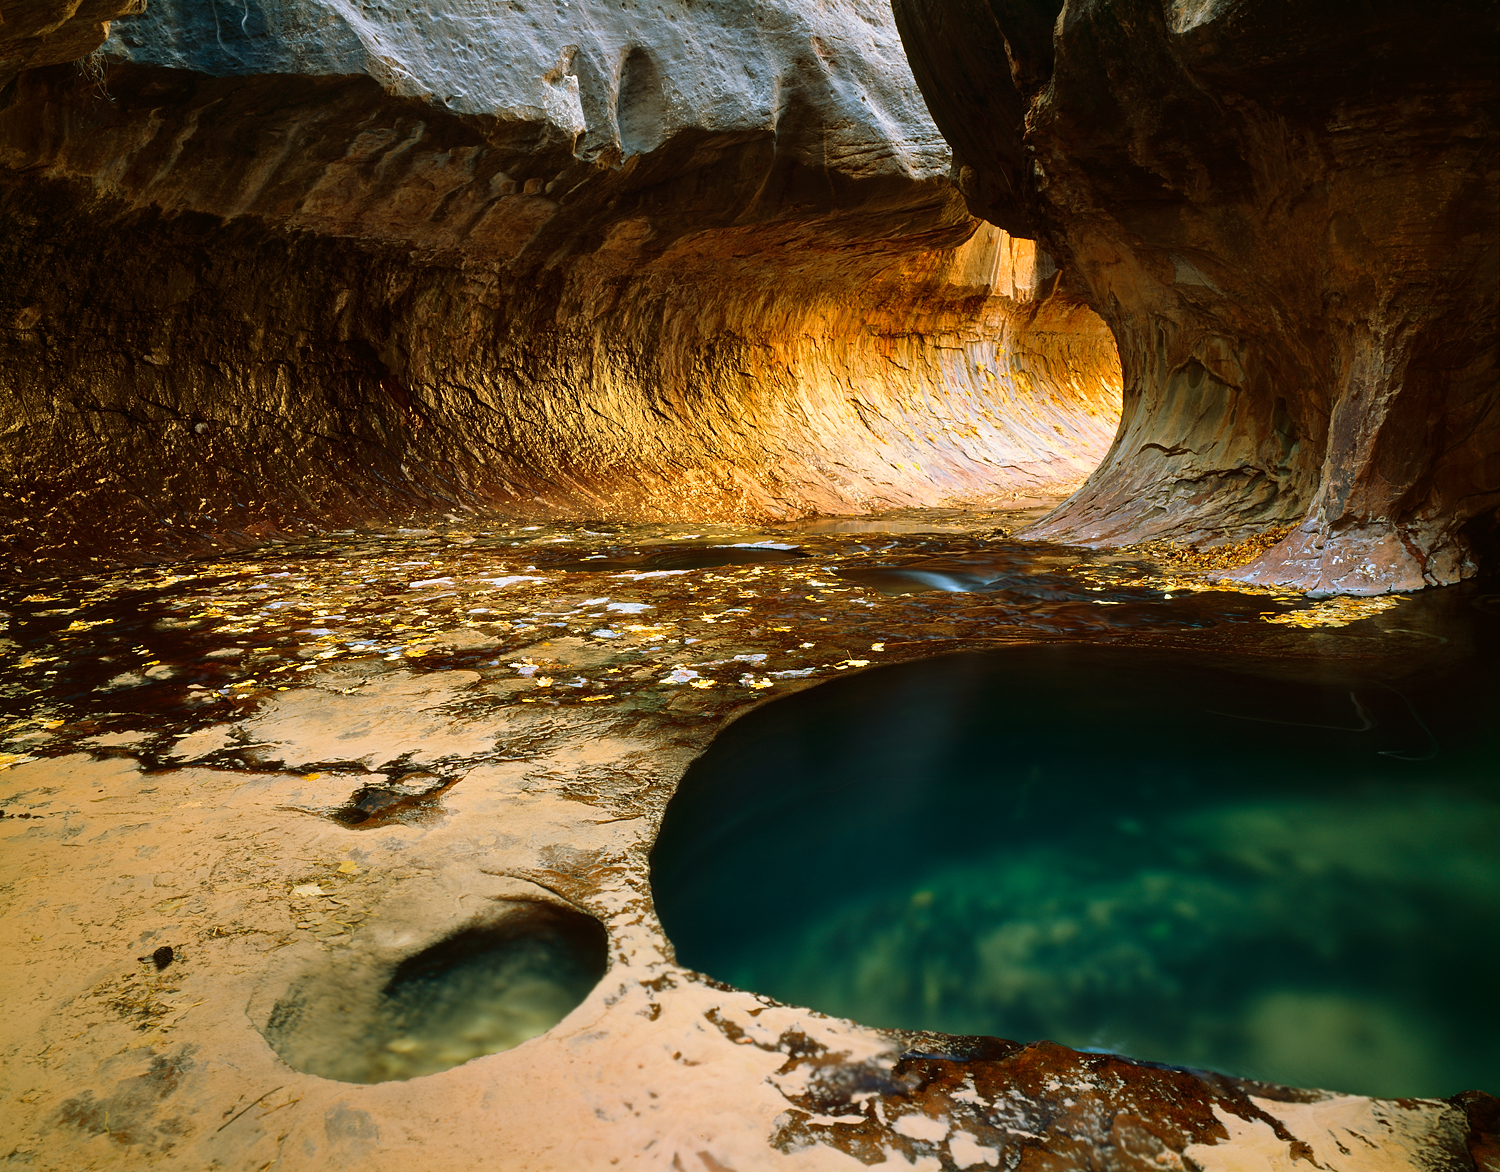 The Subway and Pool, Zion National Park, Utah